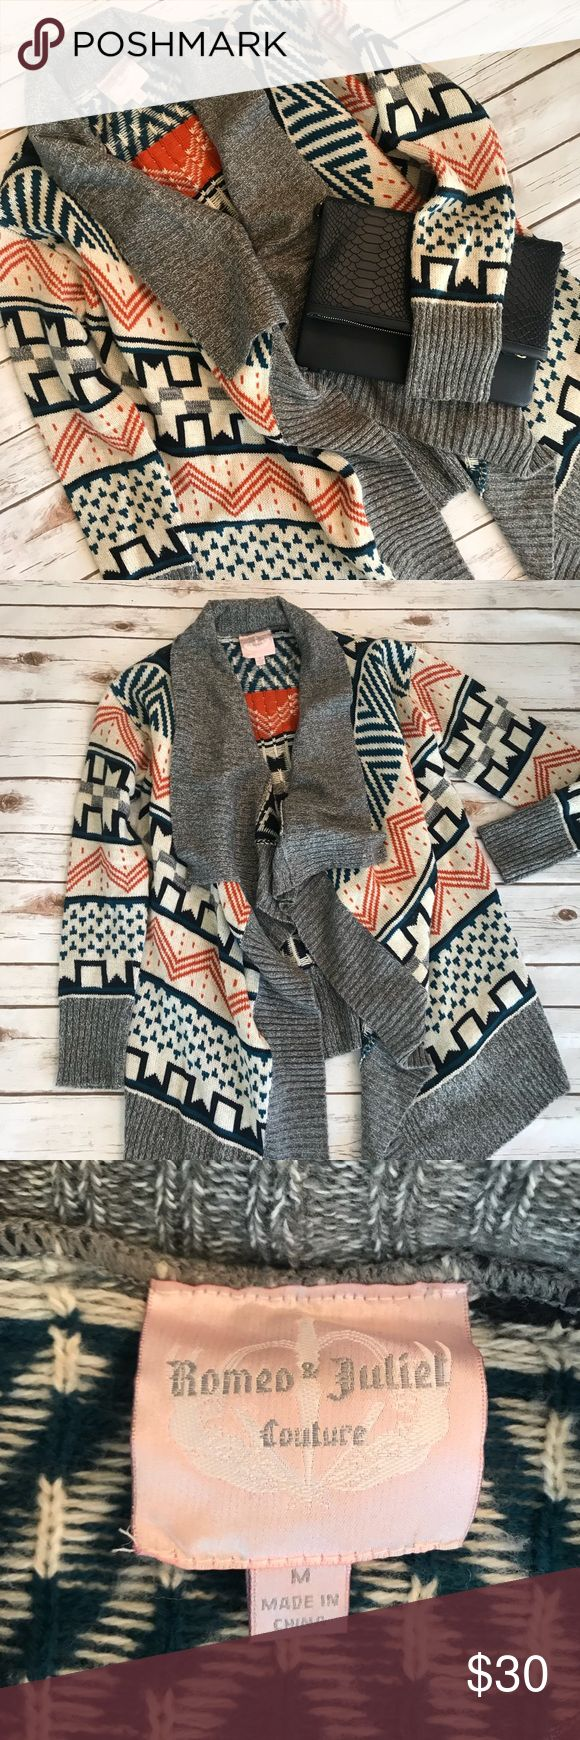 Romeo & Juliet Couture tribal print knit sweater Perfect condition tribal print sweater Romeo & Juliet Couture Sweaters